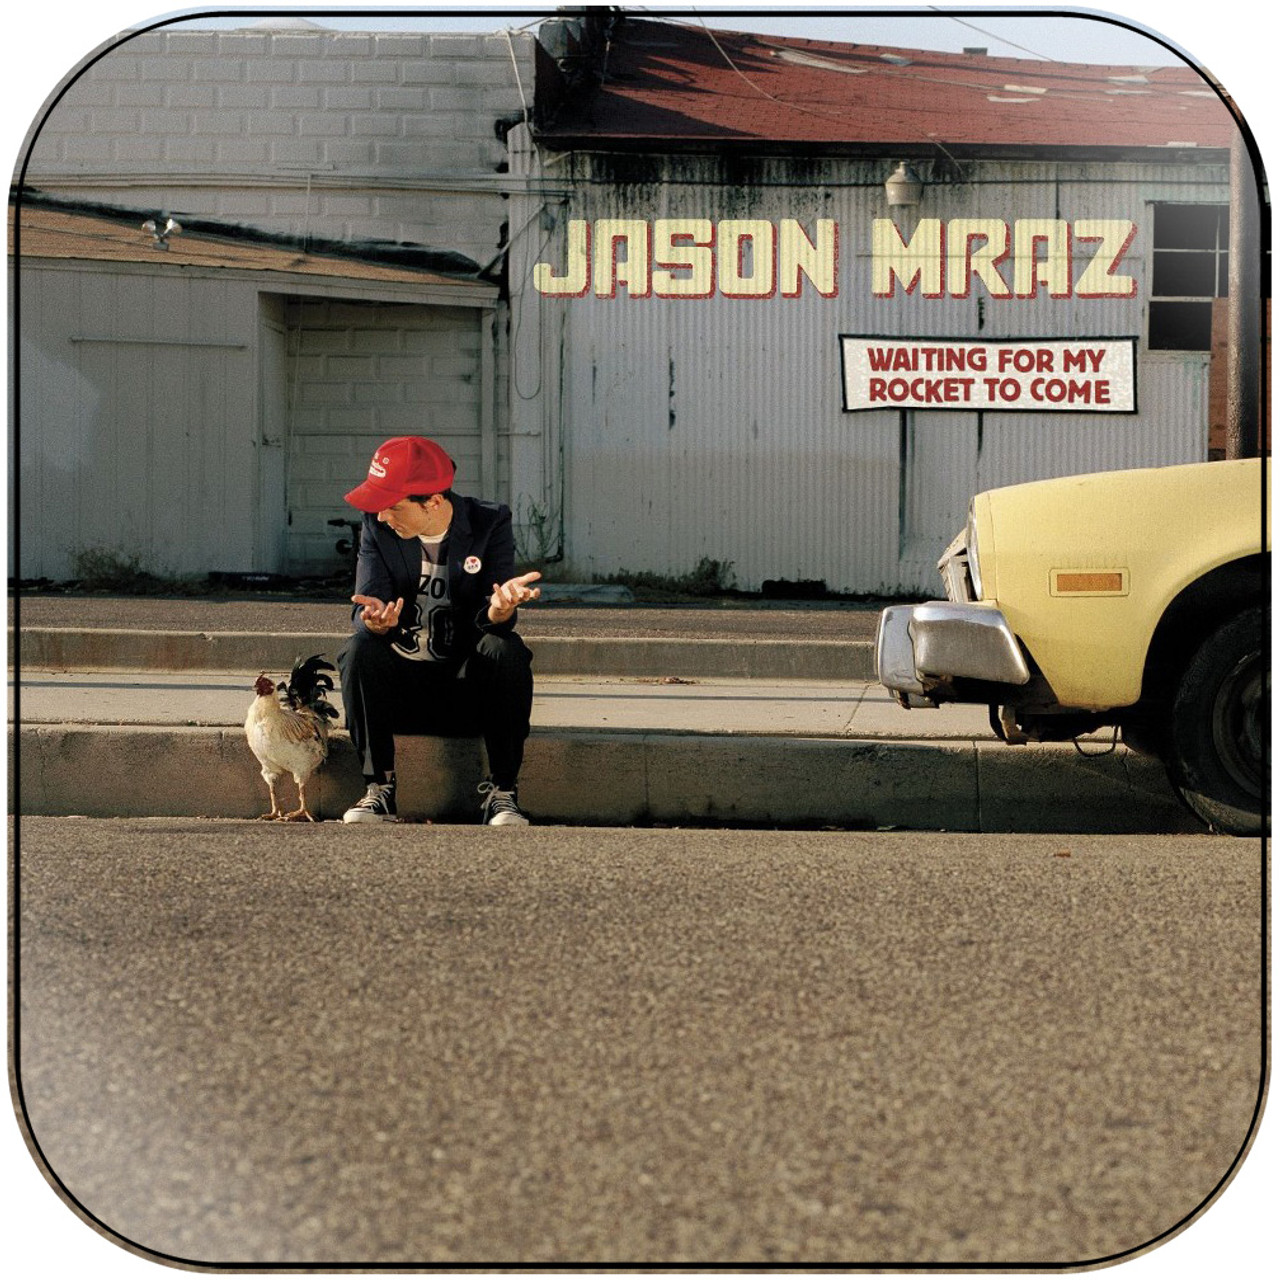 Jason Mraz - Waiting For My Rocket To Come Album Cover Sticker